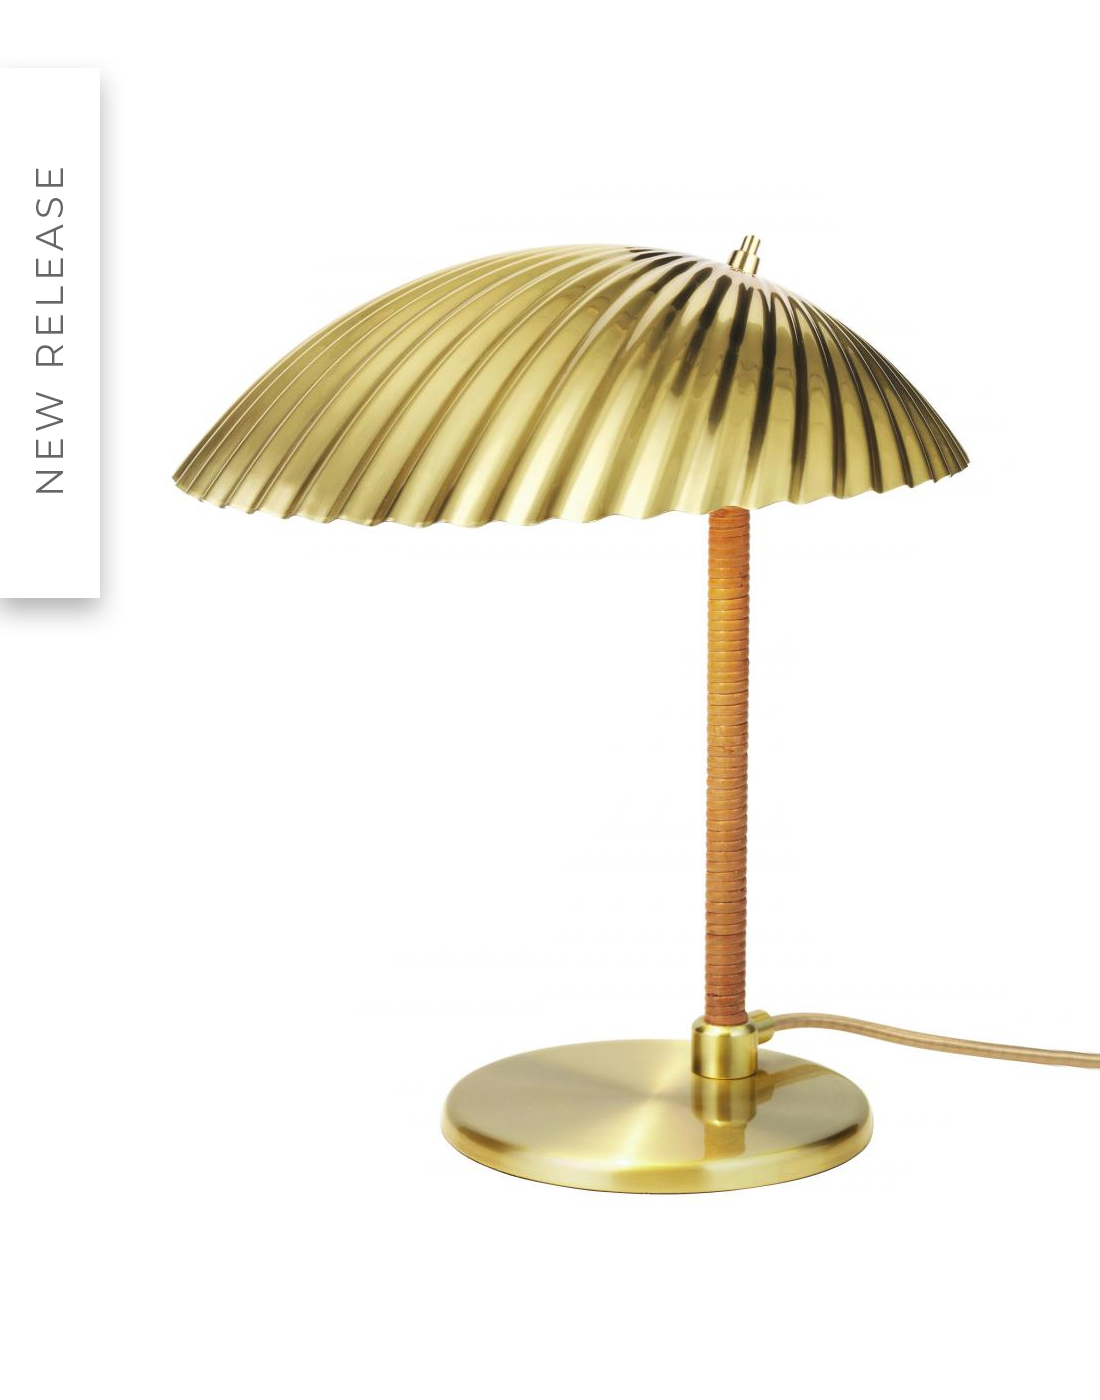 5321 table light by Gubi